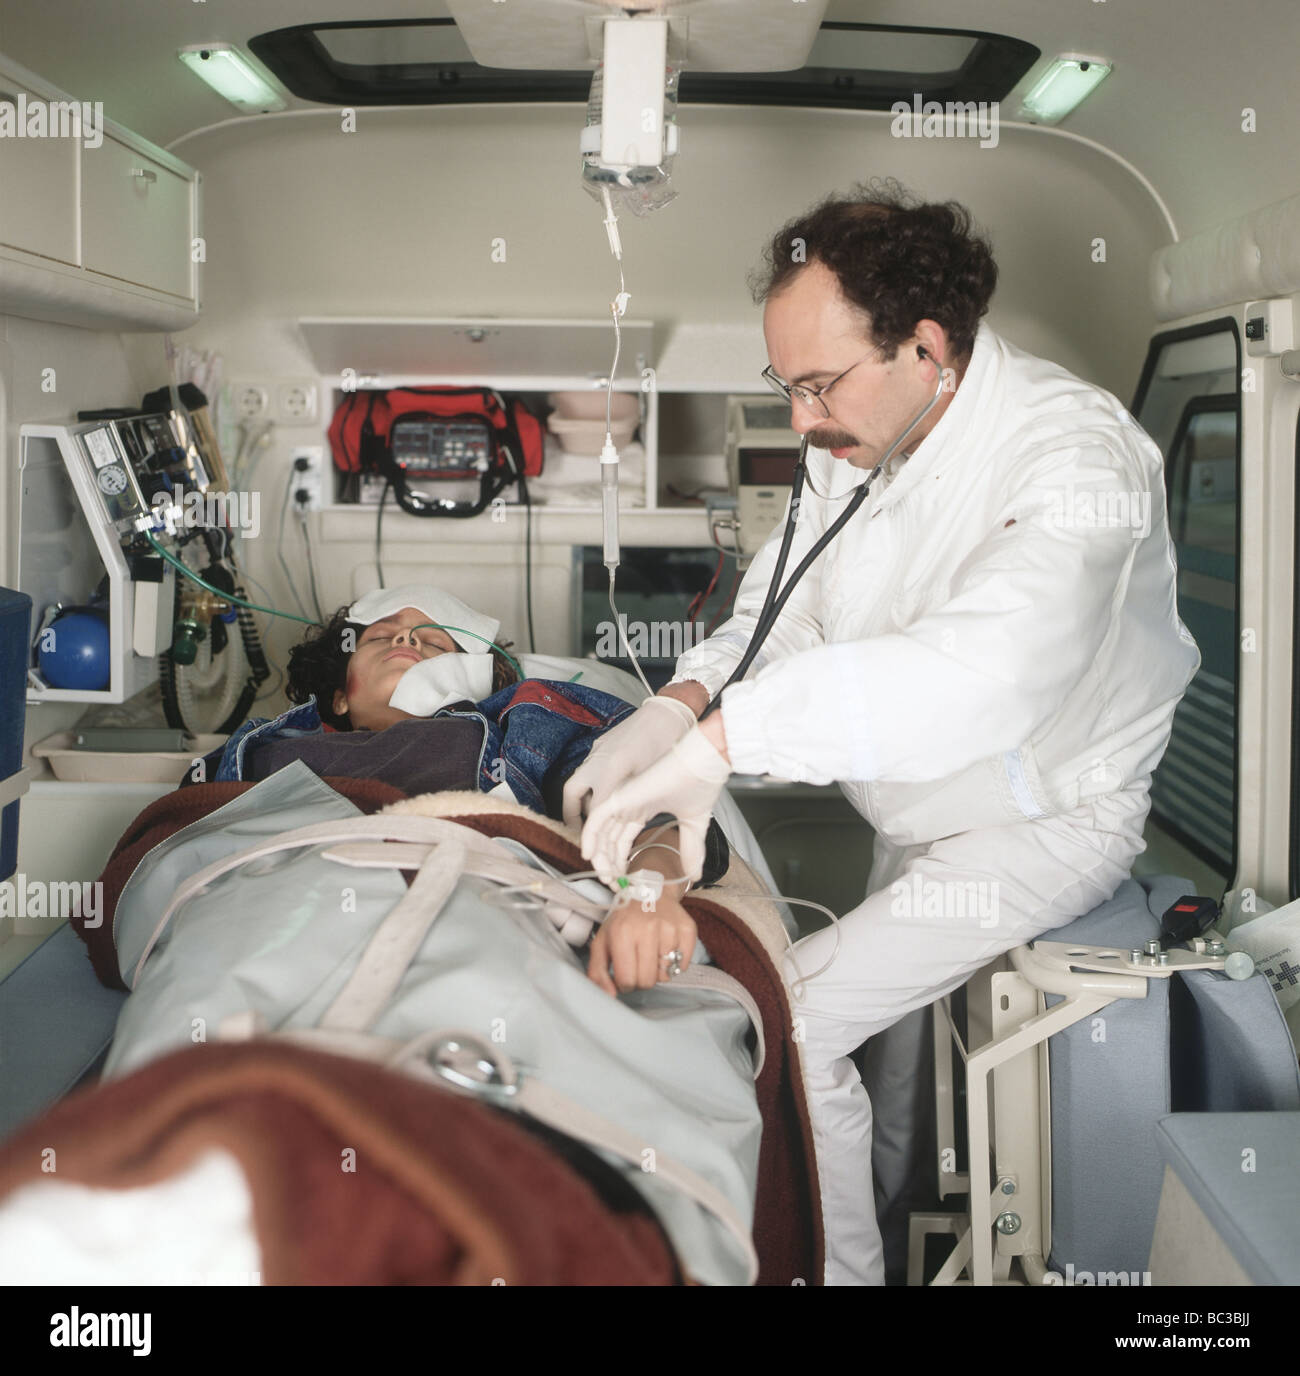 Paramedic examines a patient inside an ambulance,, IV bag ...